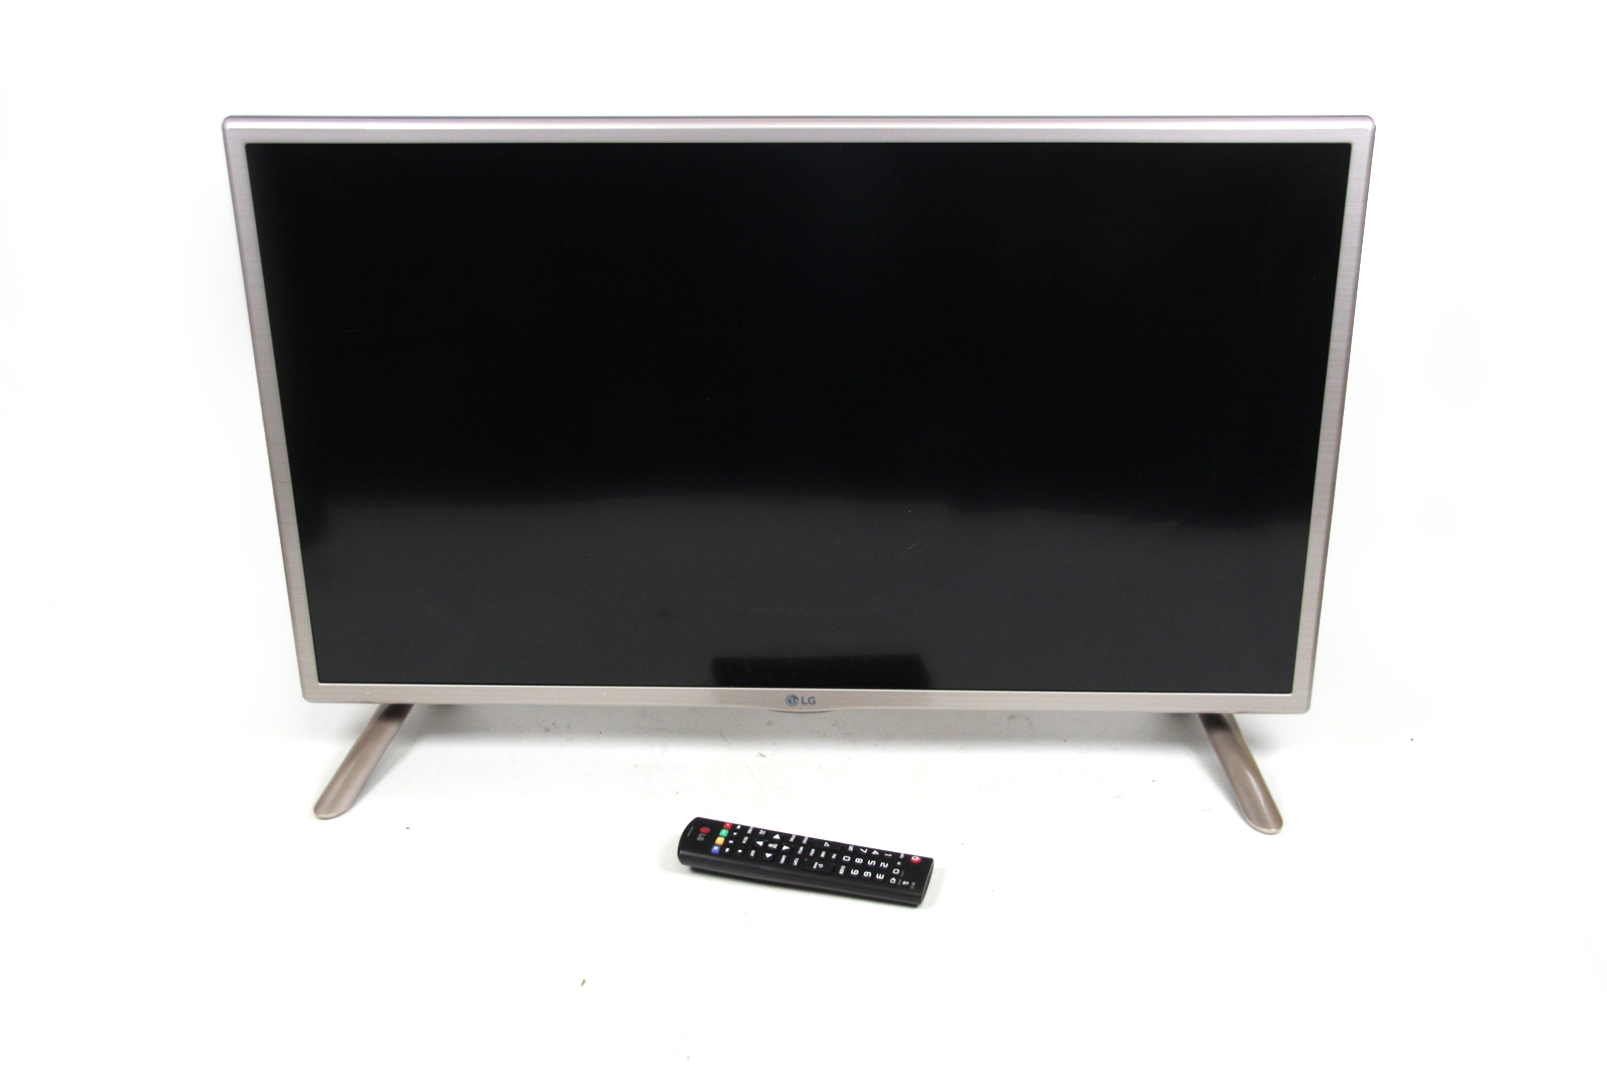 lg 32lf5610 80 cm 32 zoll fernseher hd tv tuner farbfernseher led backlight ovp. Black Bedroom Furniture Sets. Home Design Ideas